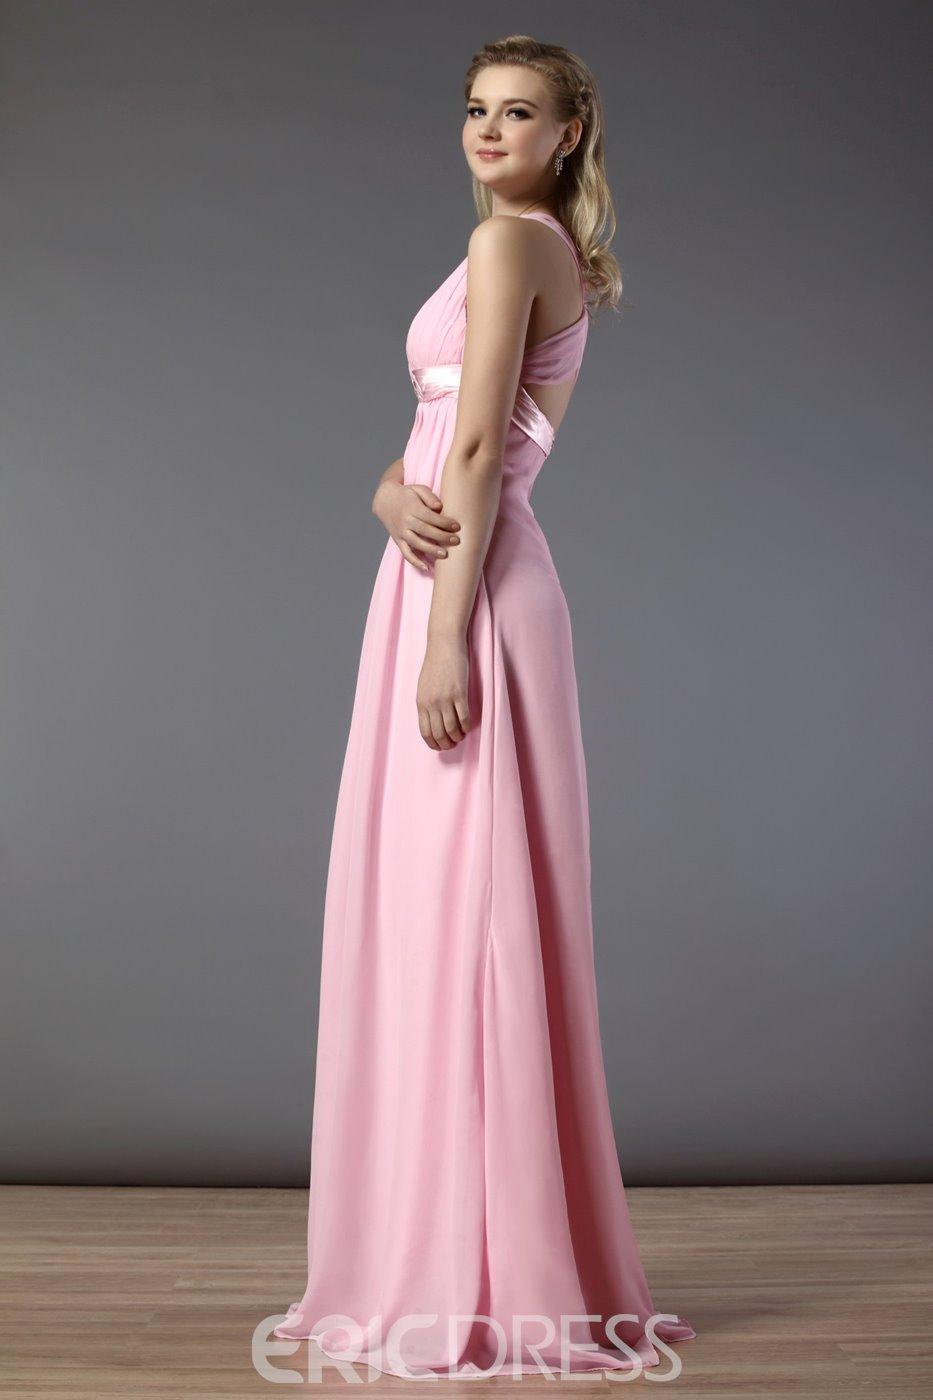 Sexy Ruched Sheath/Column Spaghetti Straps Floor-Length Bridesmaid Dress